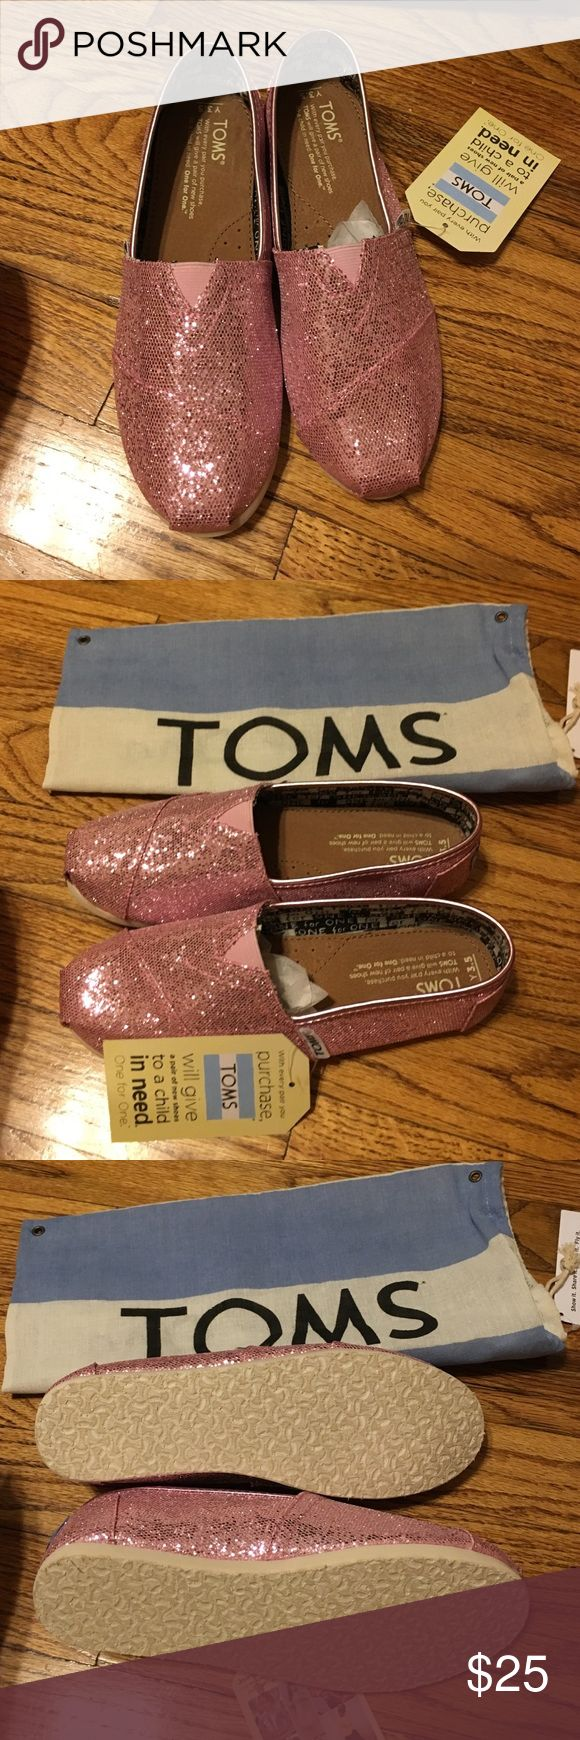 Pink glitter Toms New with tags, never worn pink glitter toms.  Comes with dust bag. TOMS Shoes